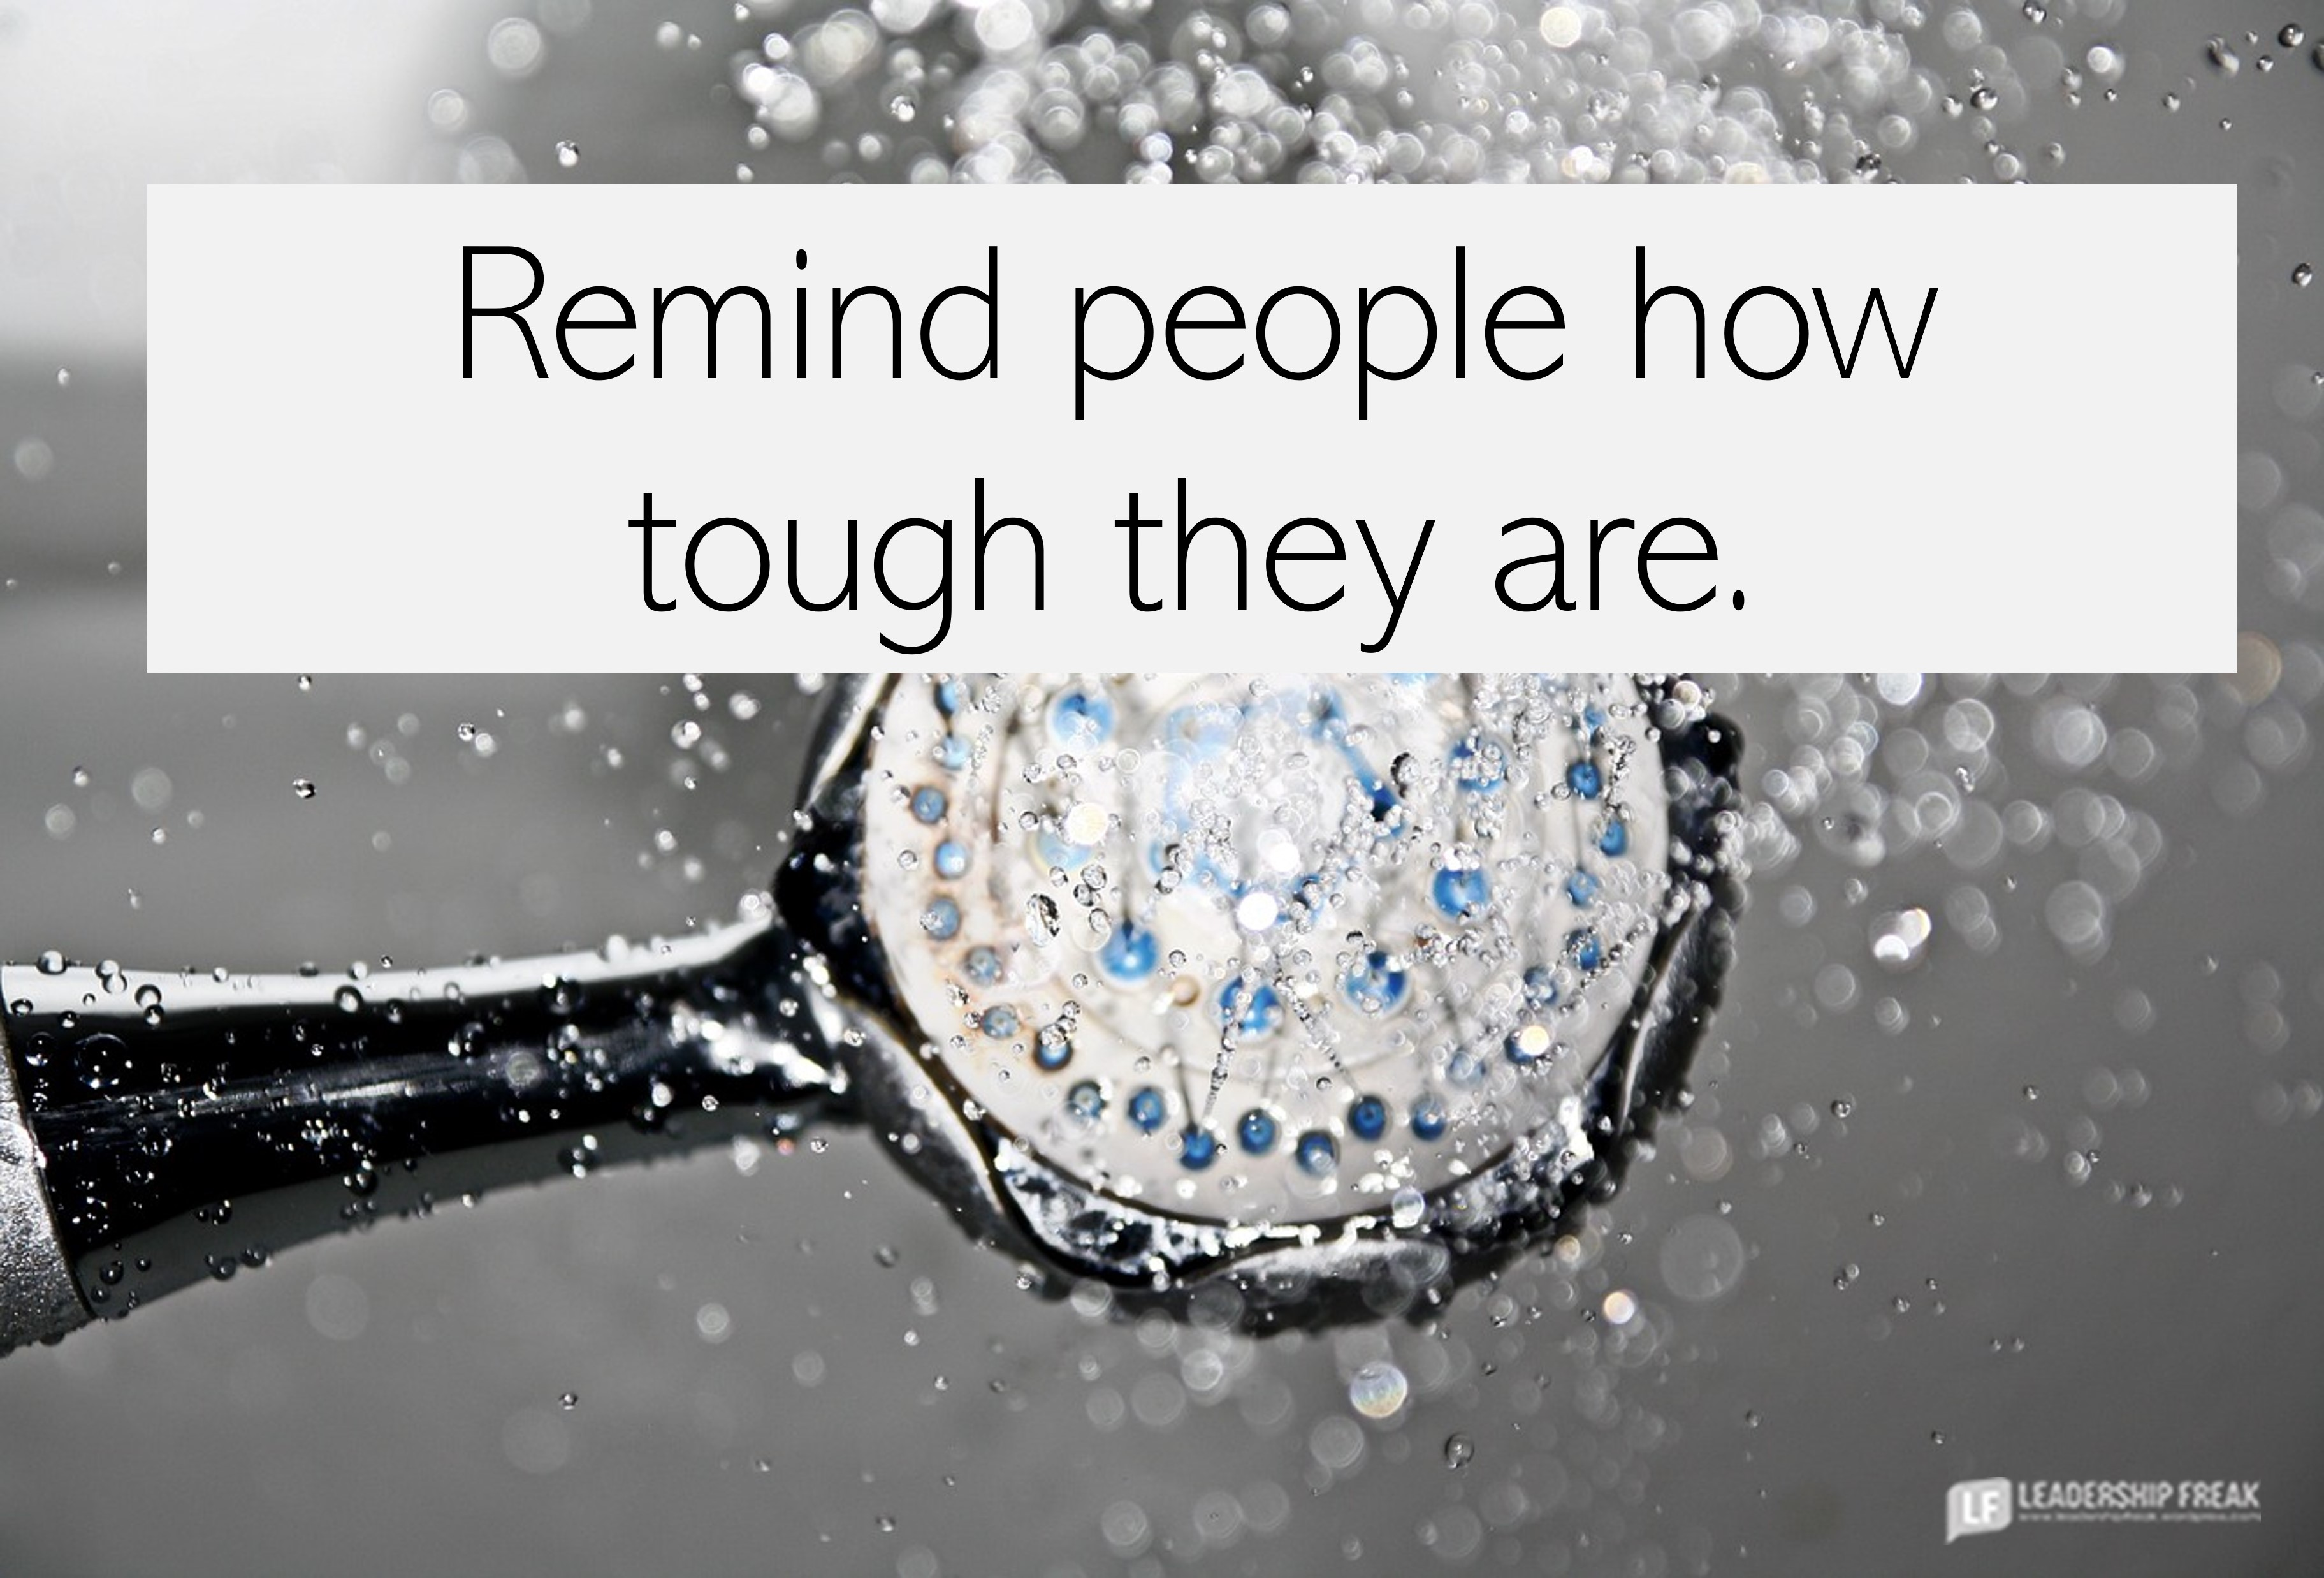 Shower head.  Remind people how tough they are.